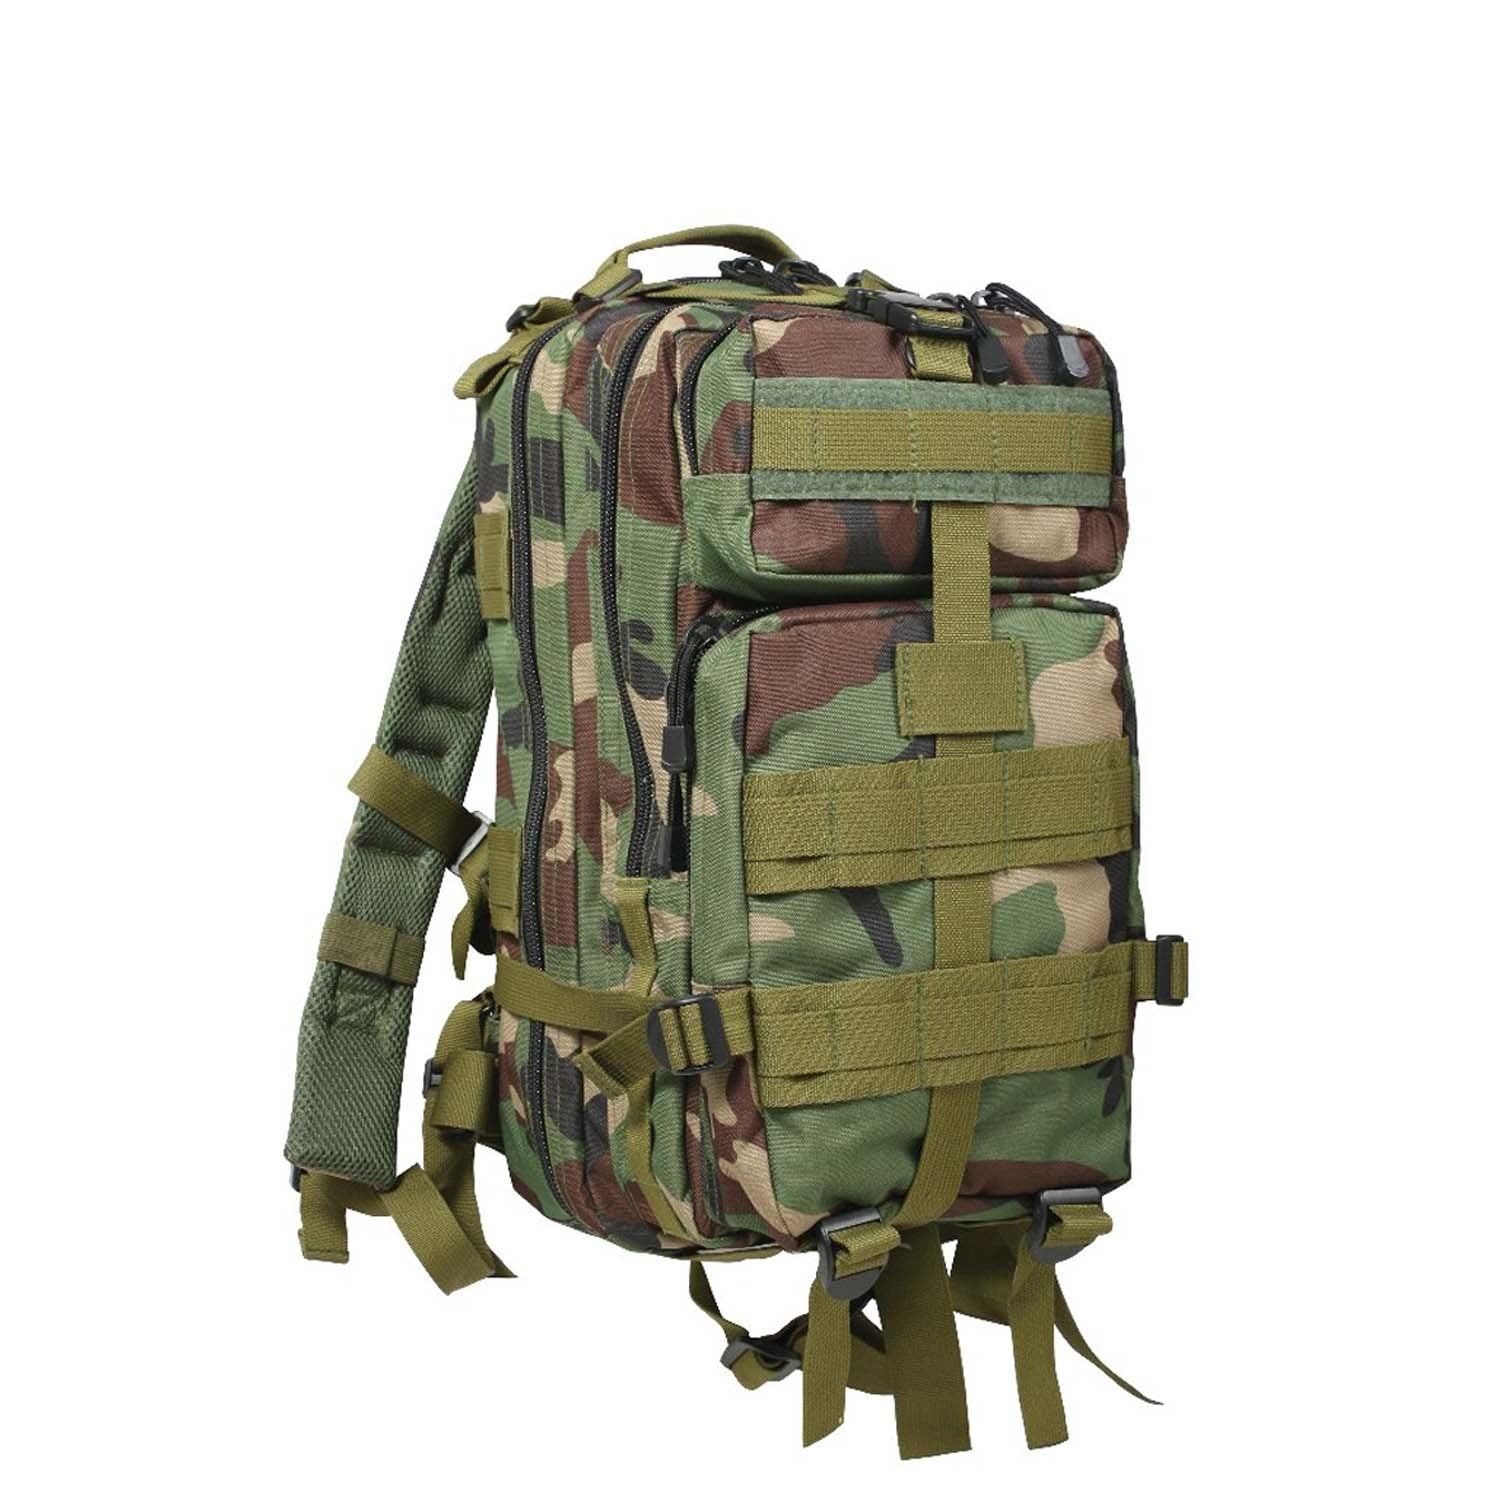 Medium Transport Pack Woodland Camouflage